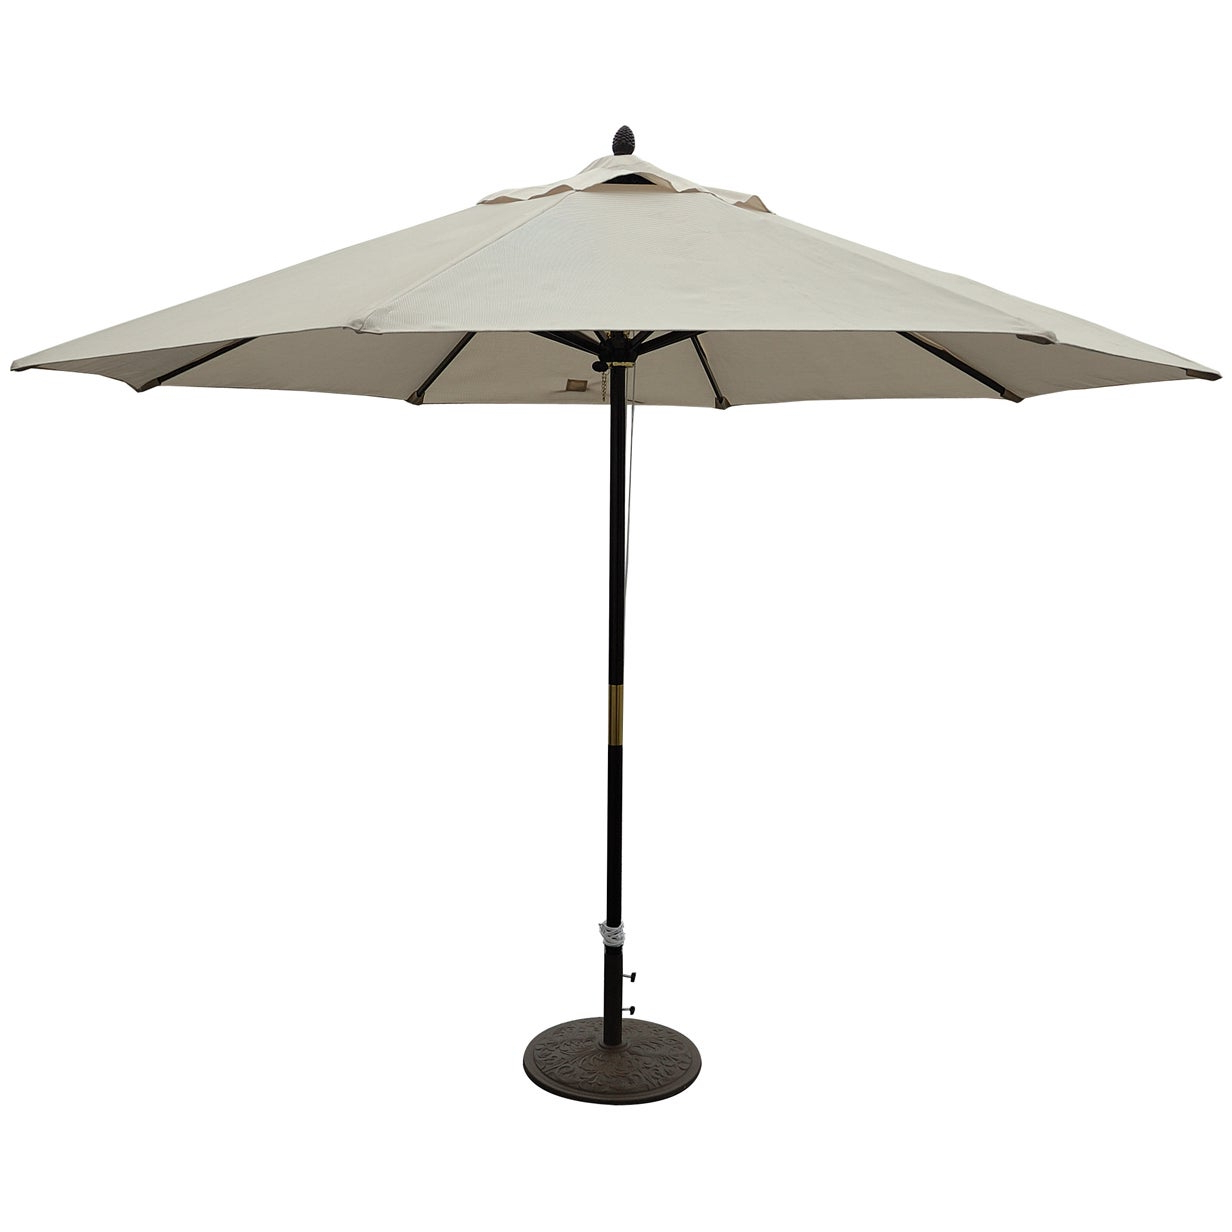 New Haven Market Umbrellas With Regard To 2020 Tropishade 11 Ft. Dark Wood Market Umbrella With Beige Olefin Cover (Gallery 8 of 20)